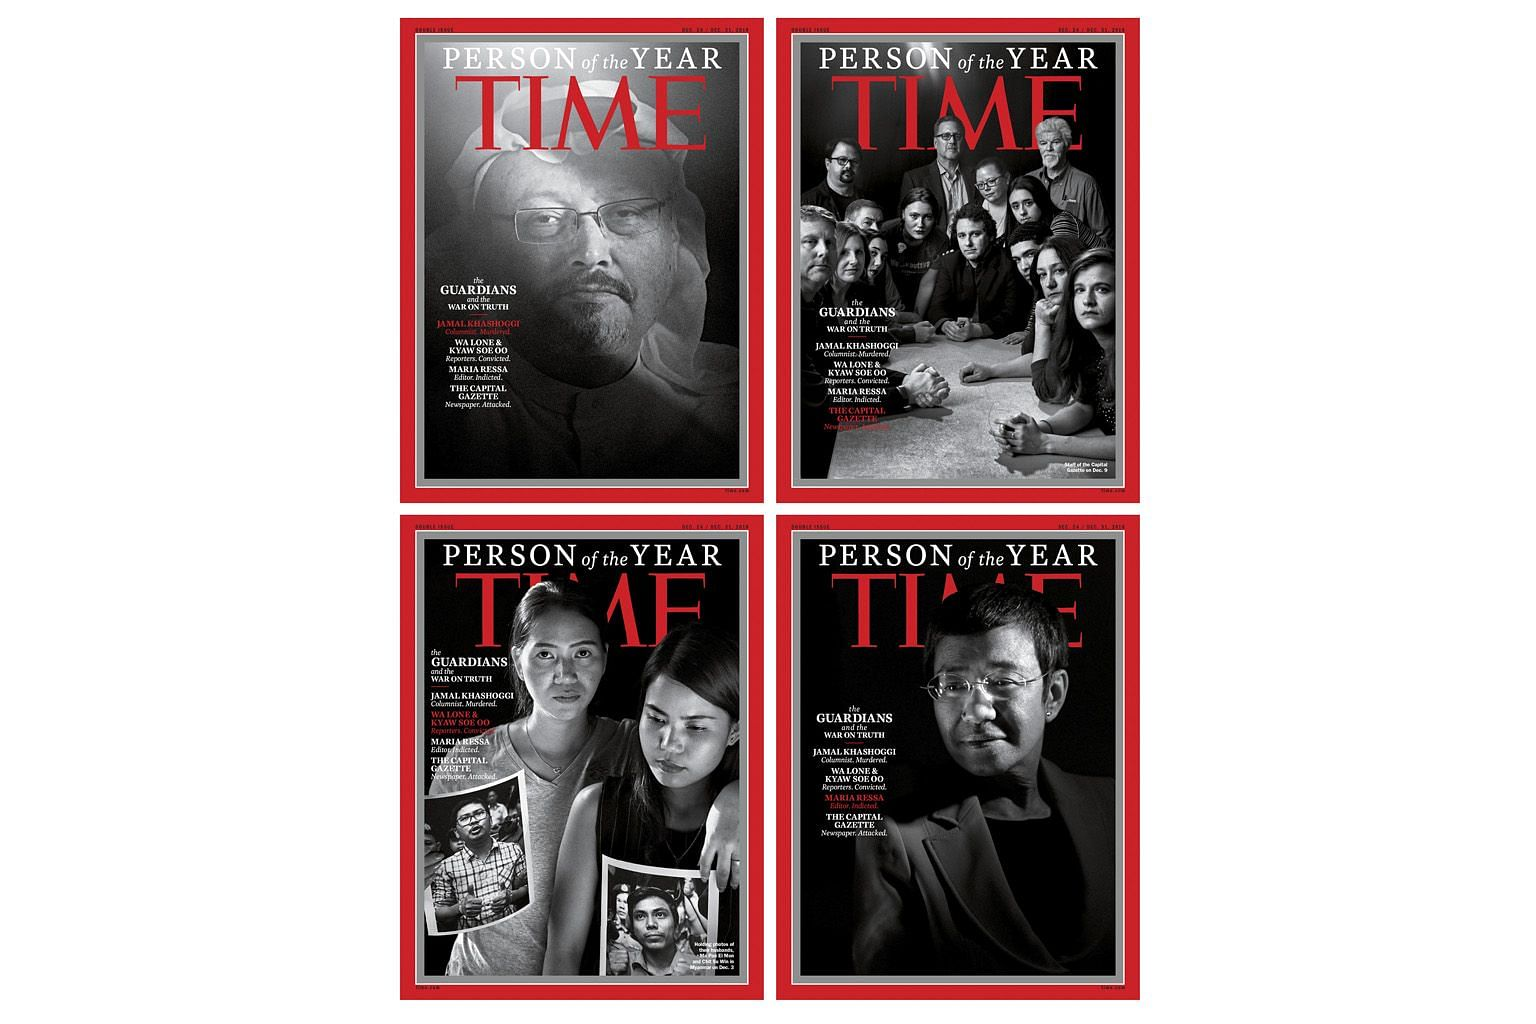 Time published four magazine covers to spotlight the different persecuted honourees: (Clockwise from top left) murdered Saudi journalist Jamal Khashoggi; the staff of the Capital Gazette in Annapolis, Maryland, where a gunman killed five people in Ju